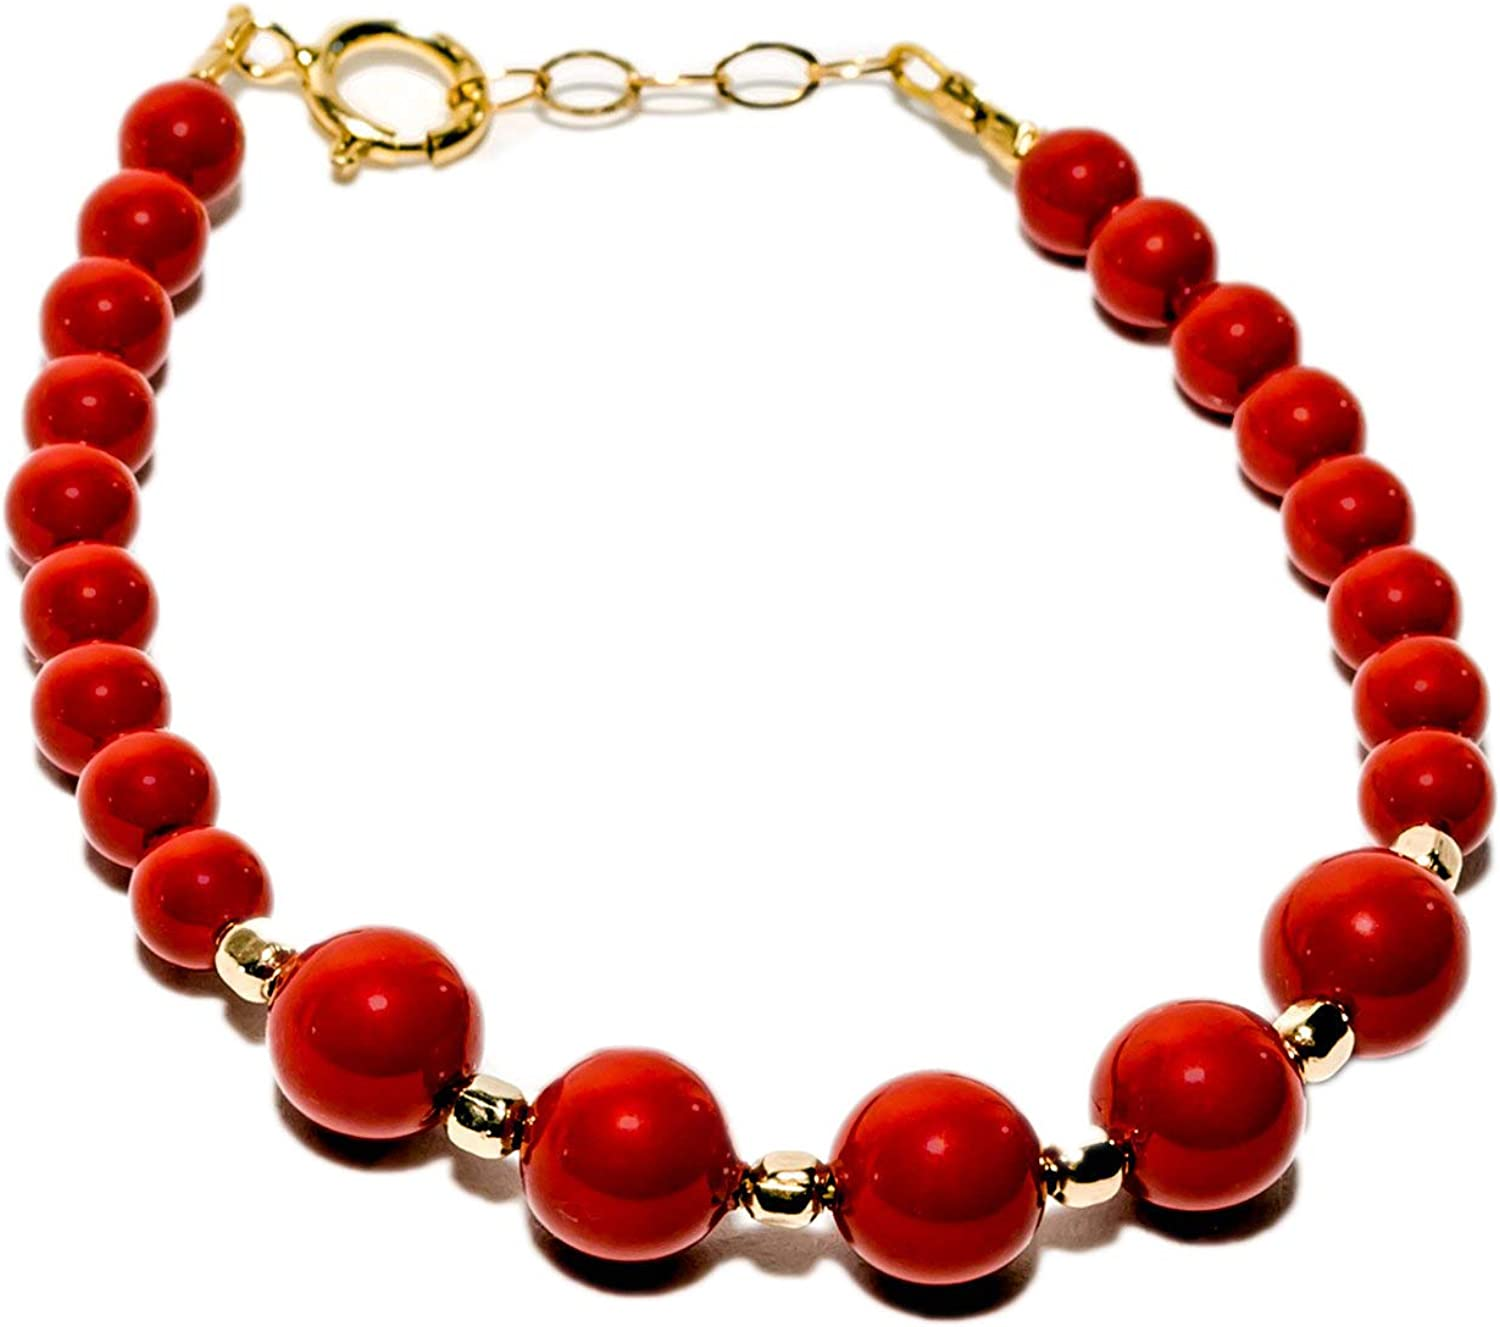 Bracelet coral beads and chain gold filled